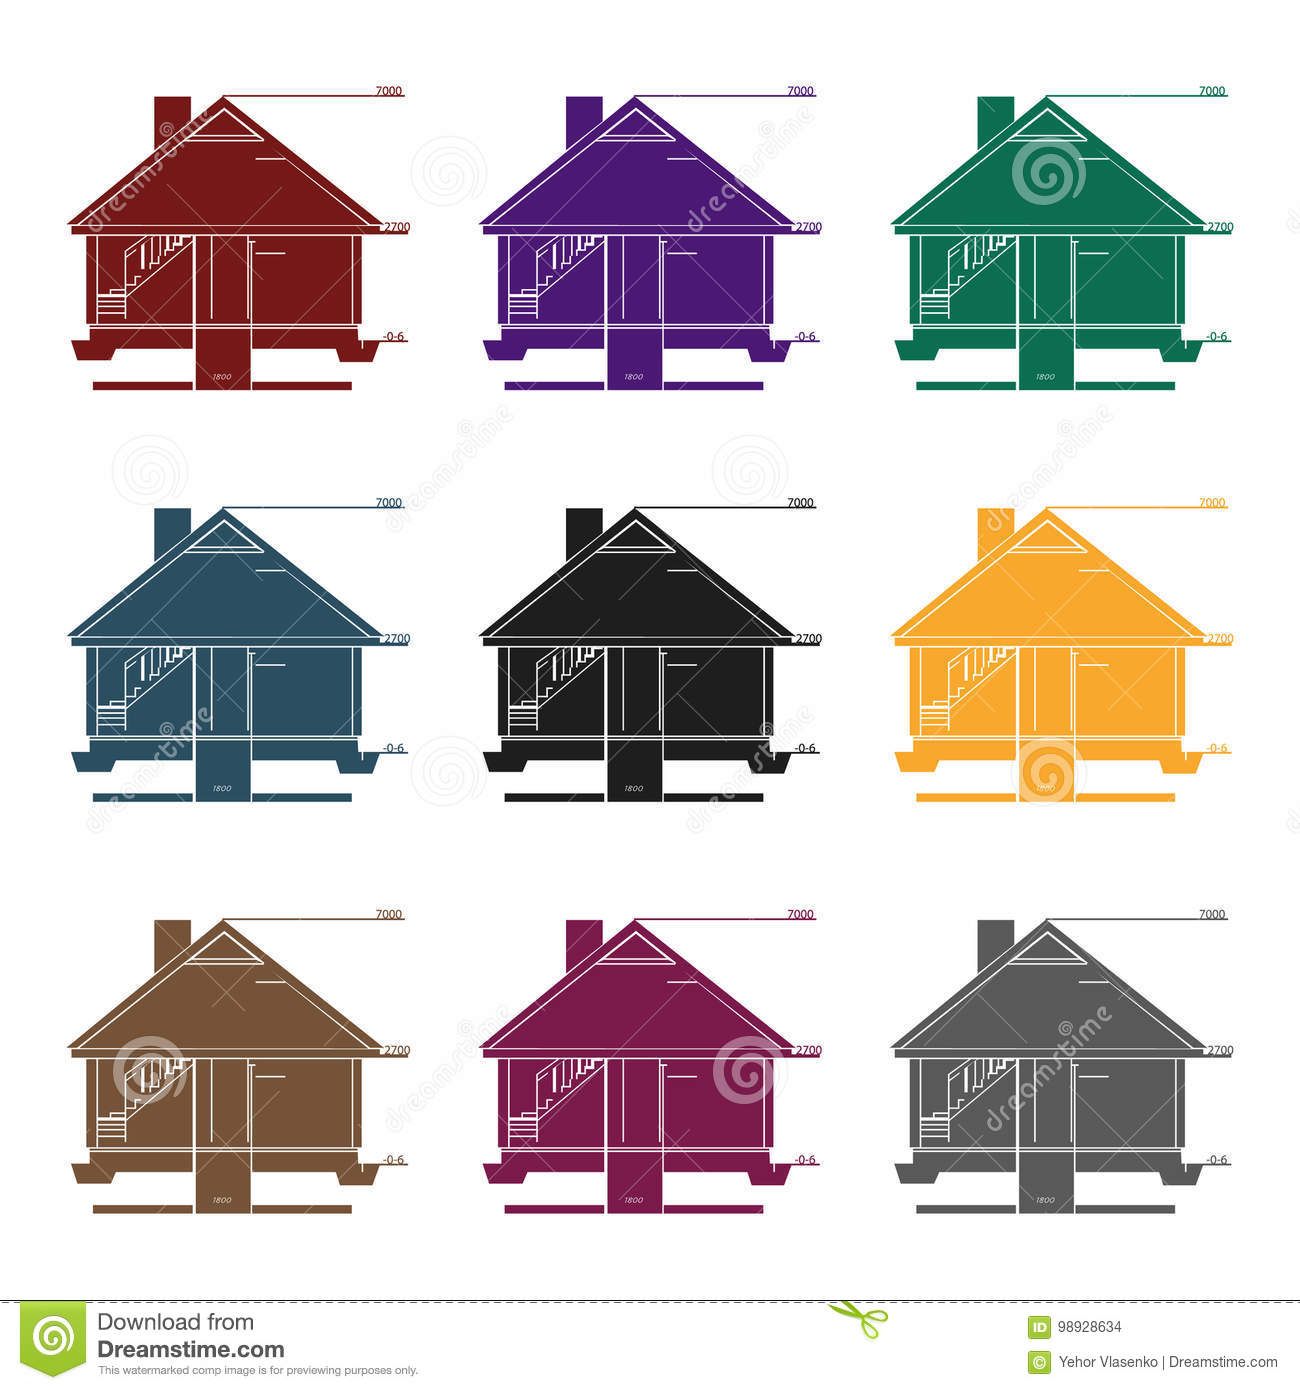 Technical Drawing Of House Icon In Black Style On White Background